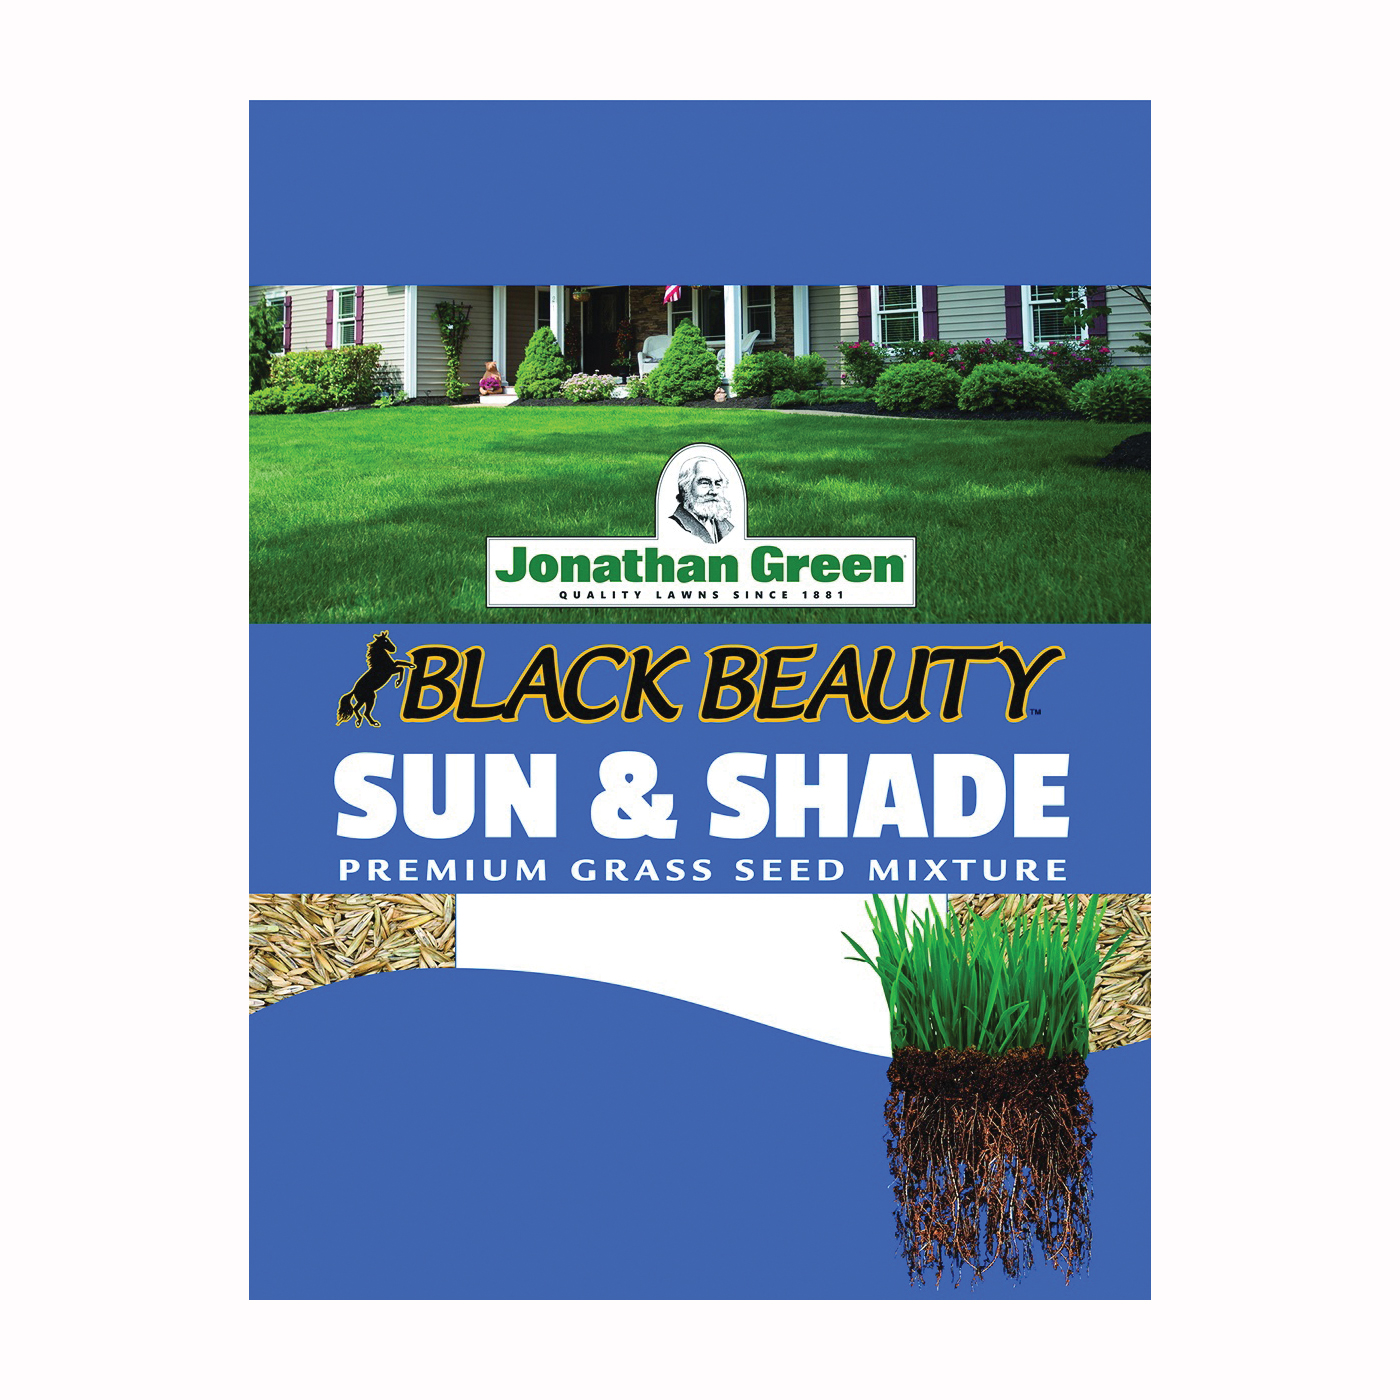 Picture of Jonathan Green Black Beauty 12001 Grass Seed, 1 lb Package, Bag